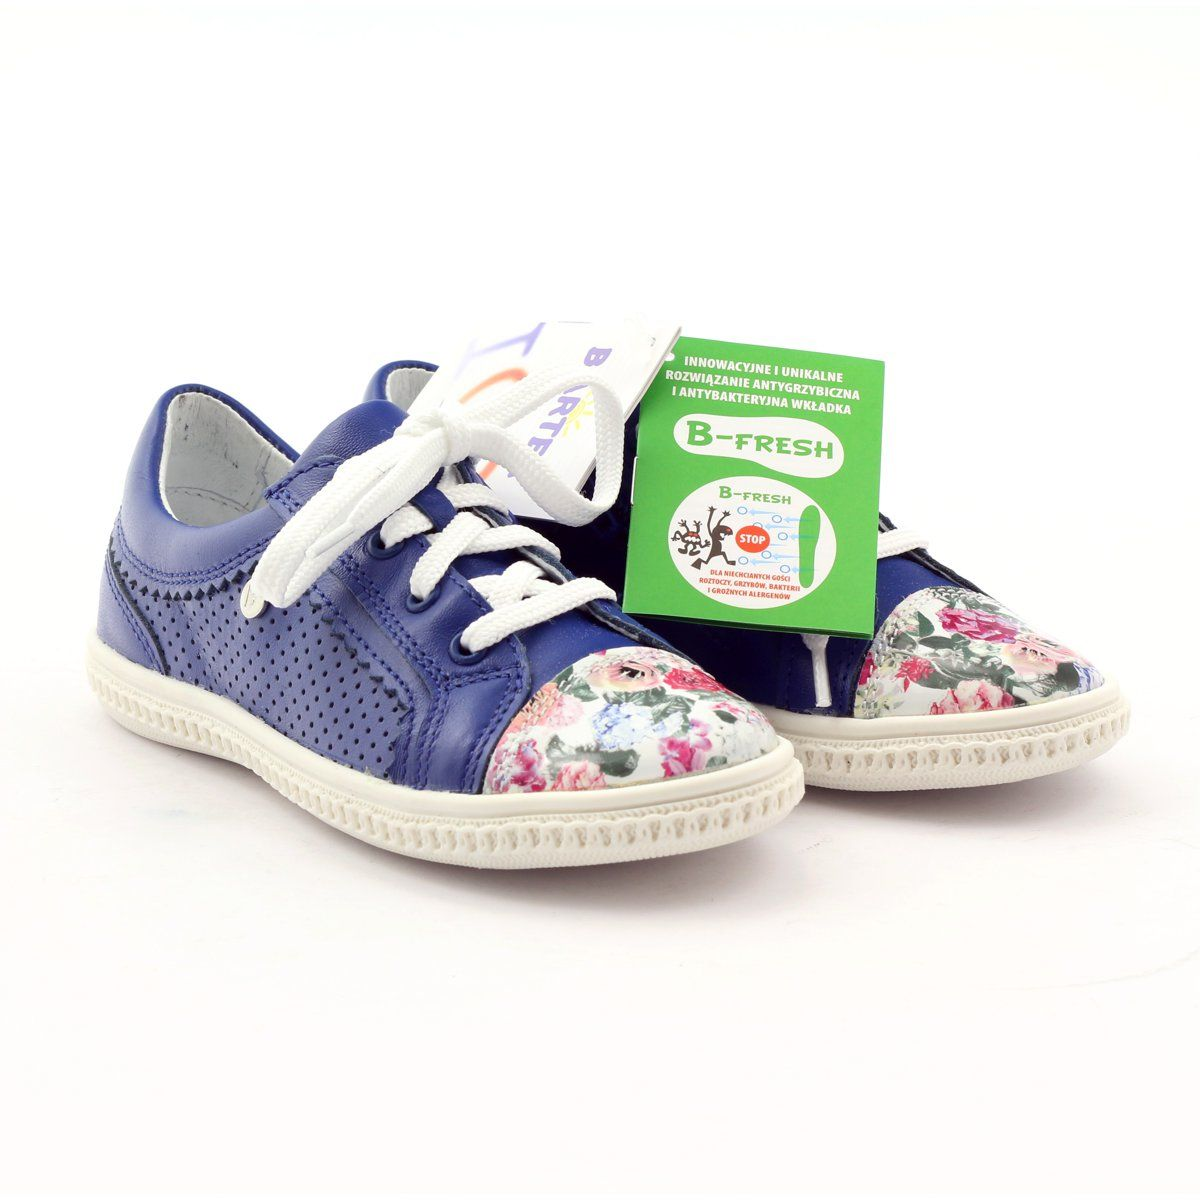 Girls Low Shoes Flowers Bartek 15524 White Violet Blue Pink Green Childrens Shoes Kid Shoes Girls Shoes